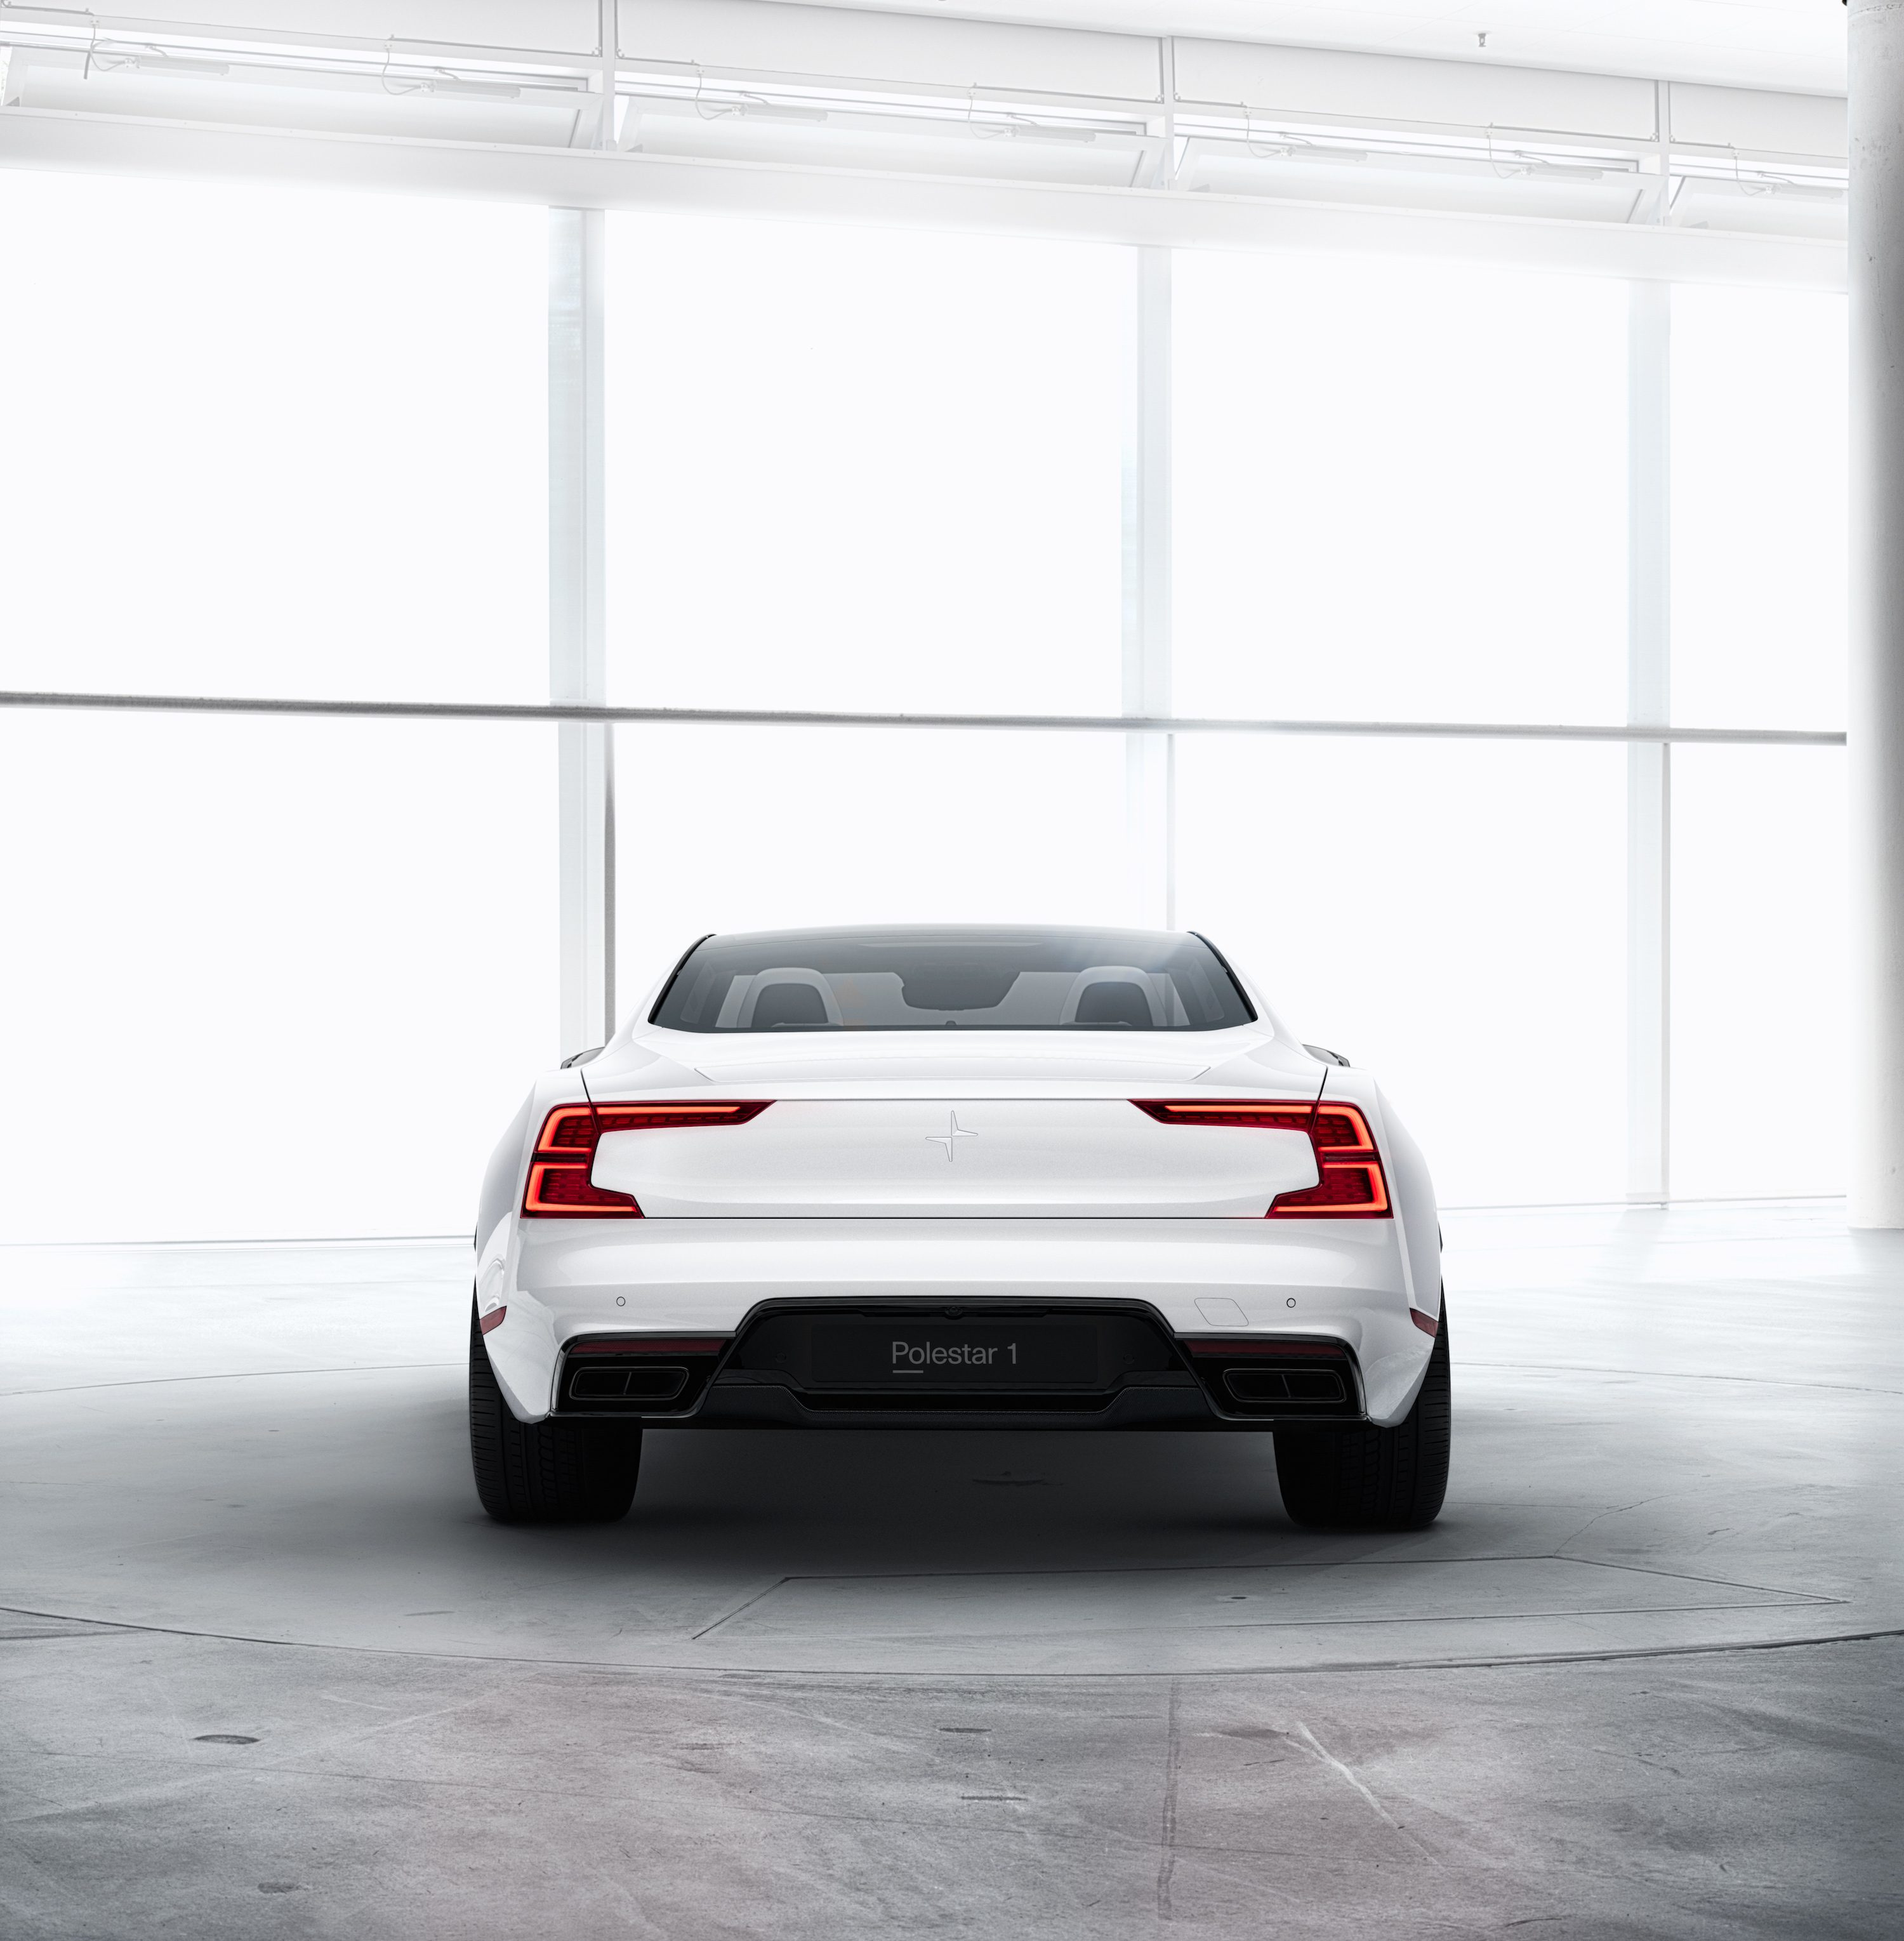 Volvo Car Wallpaper: The Polestar 1 Is A 600-horsepower Hybrid Sports Coupe